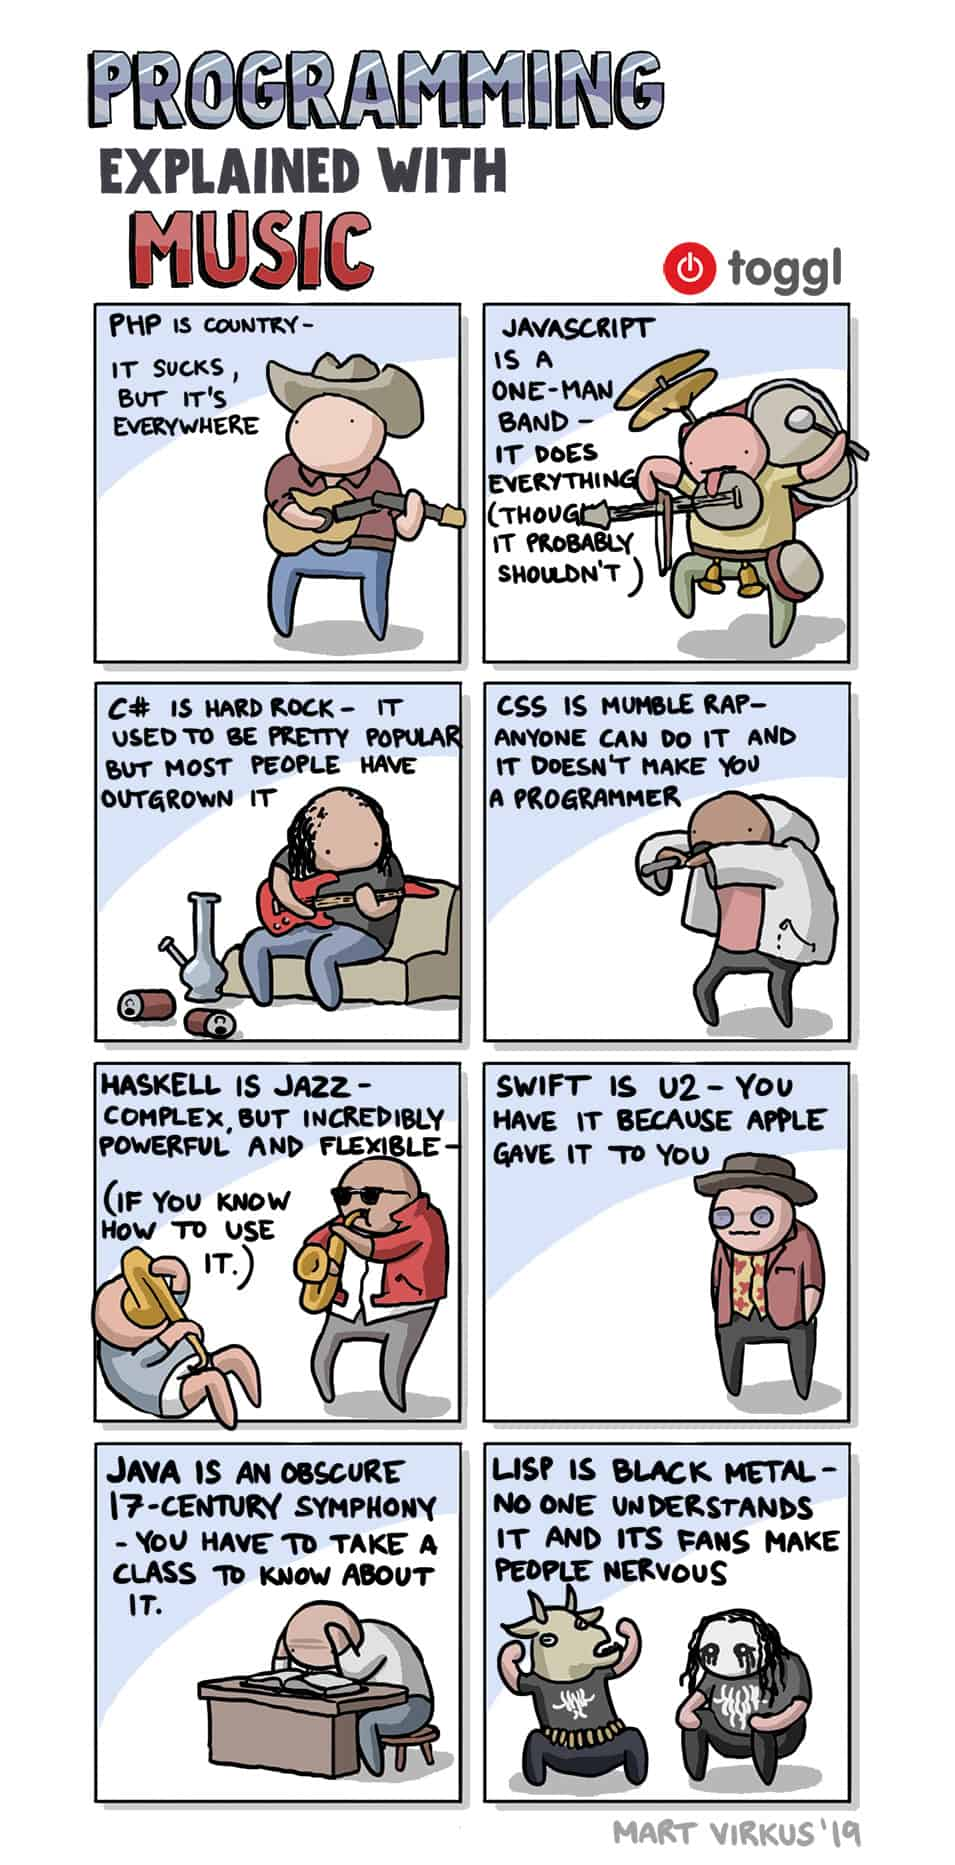 Programming Explained with Music comic